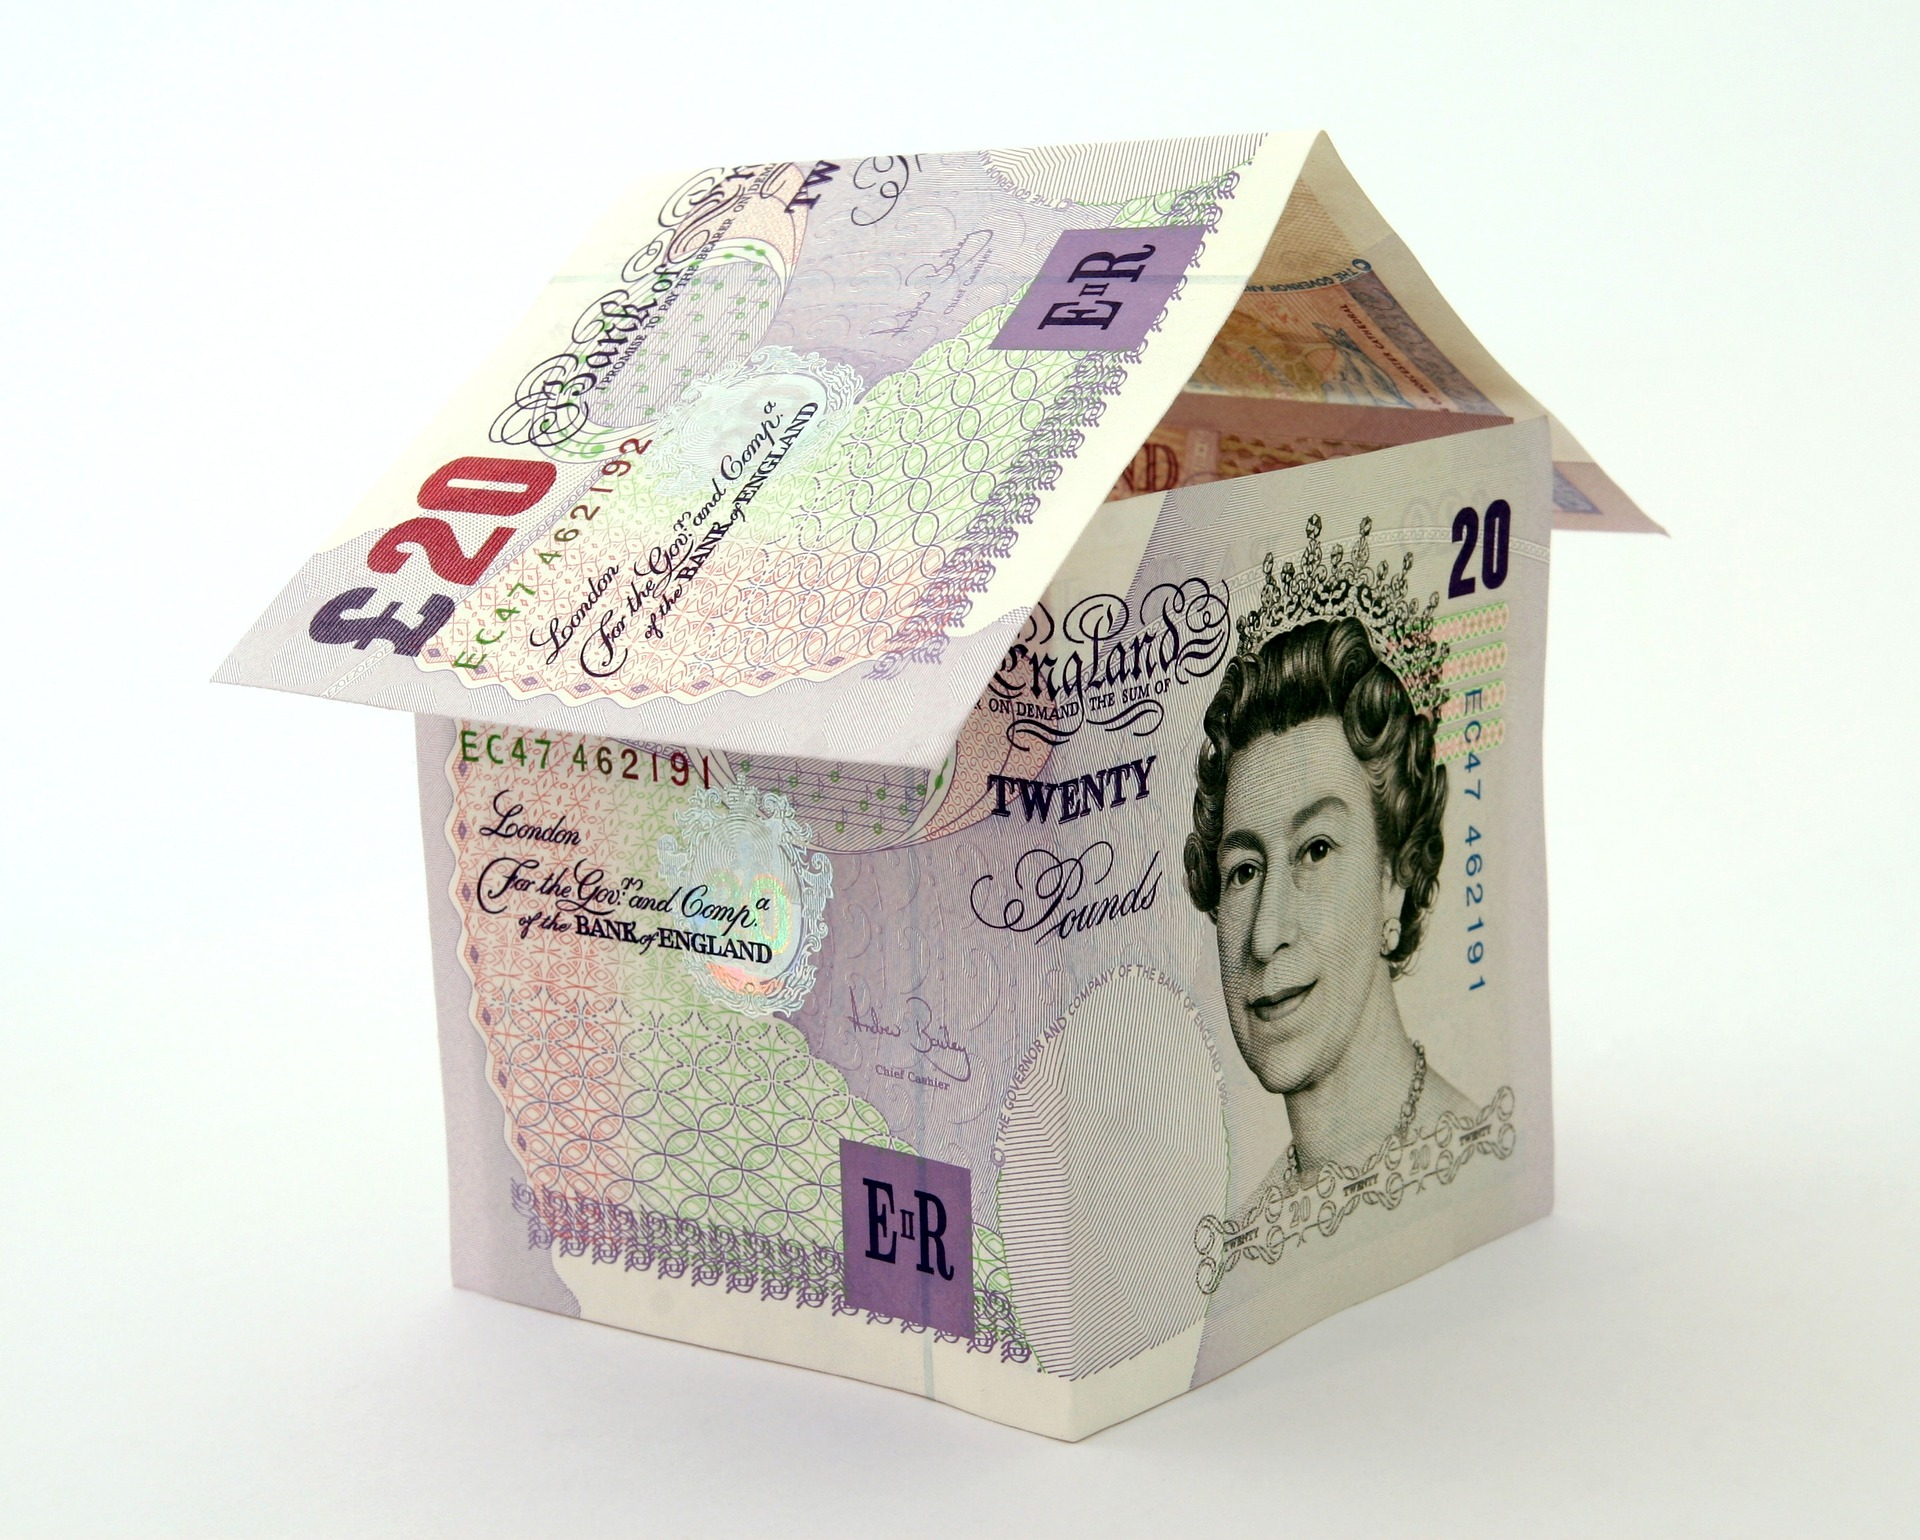 Interest-only mortgage options